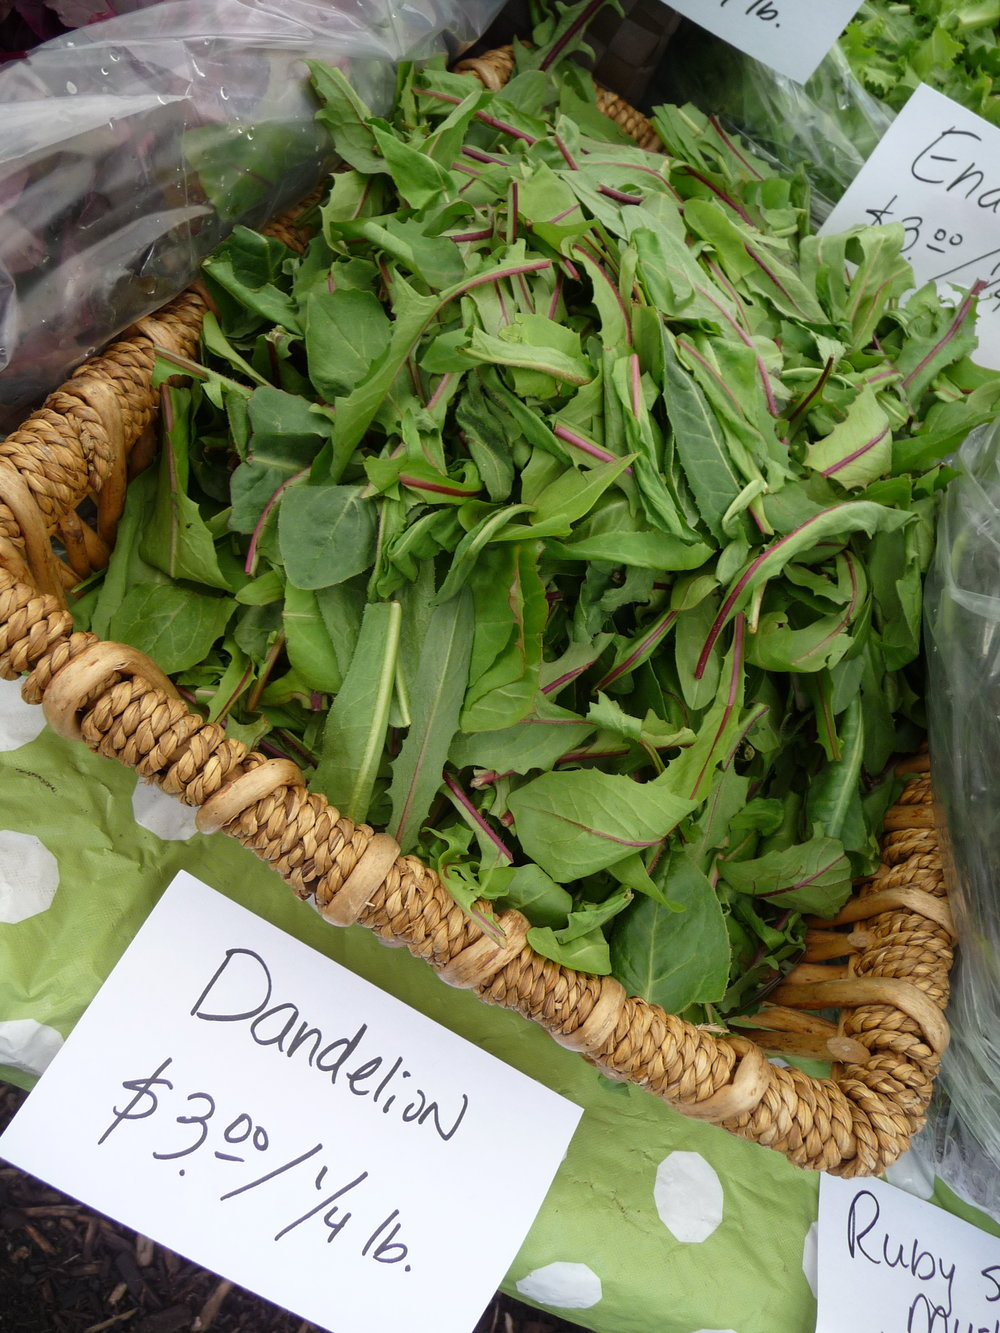 Dandelion Greens at the Farmers Market